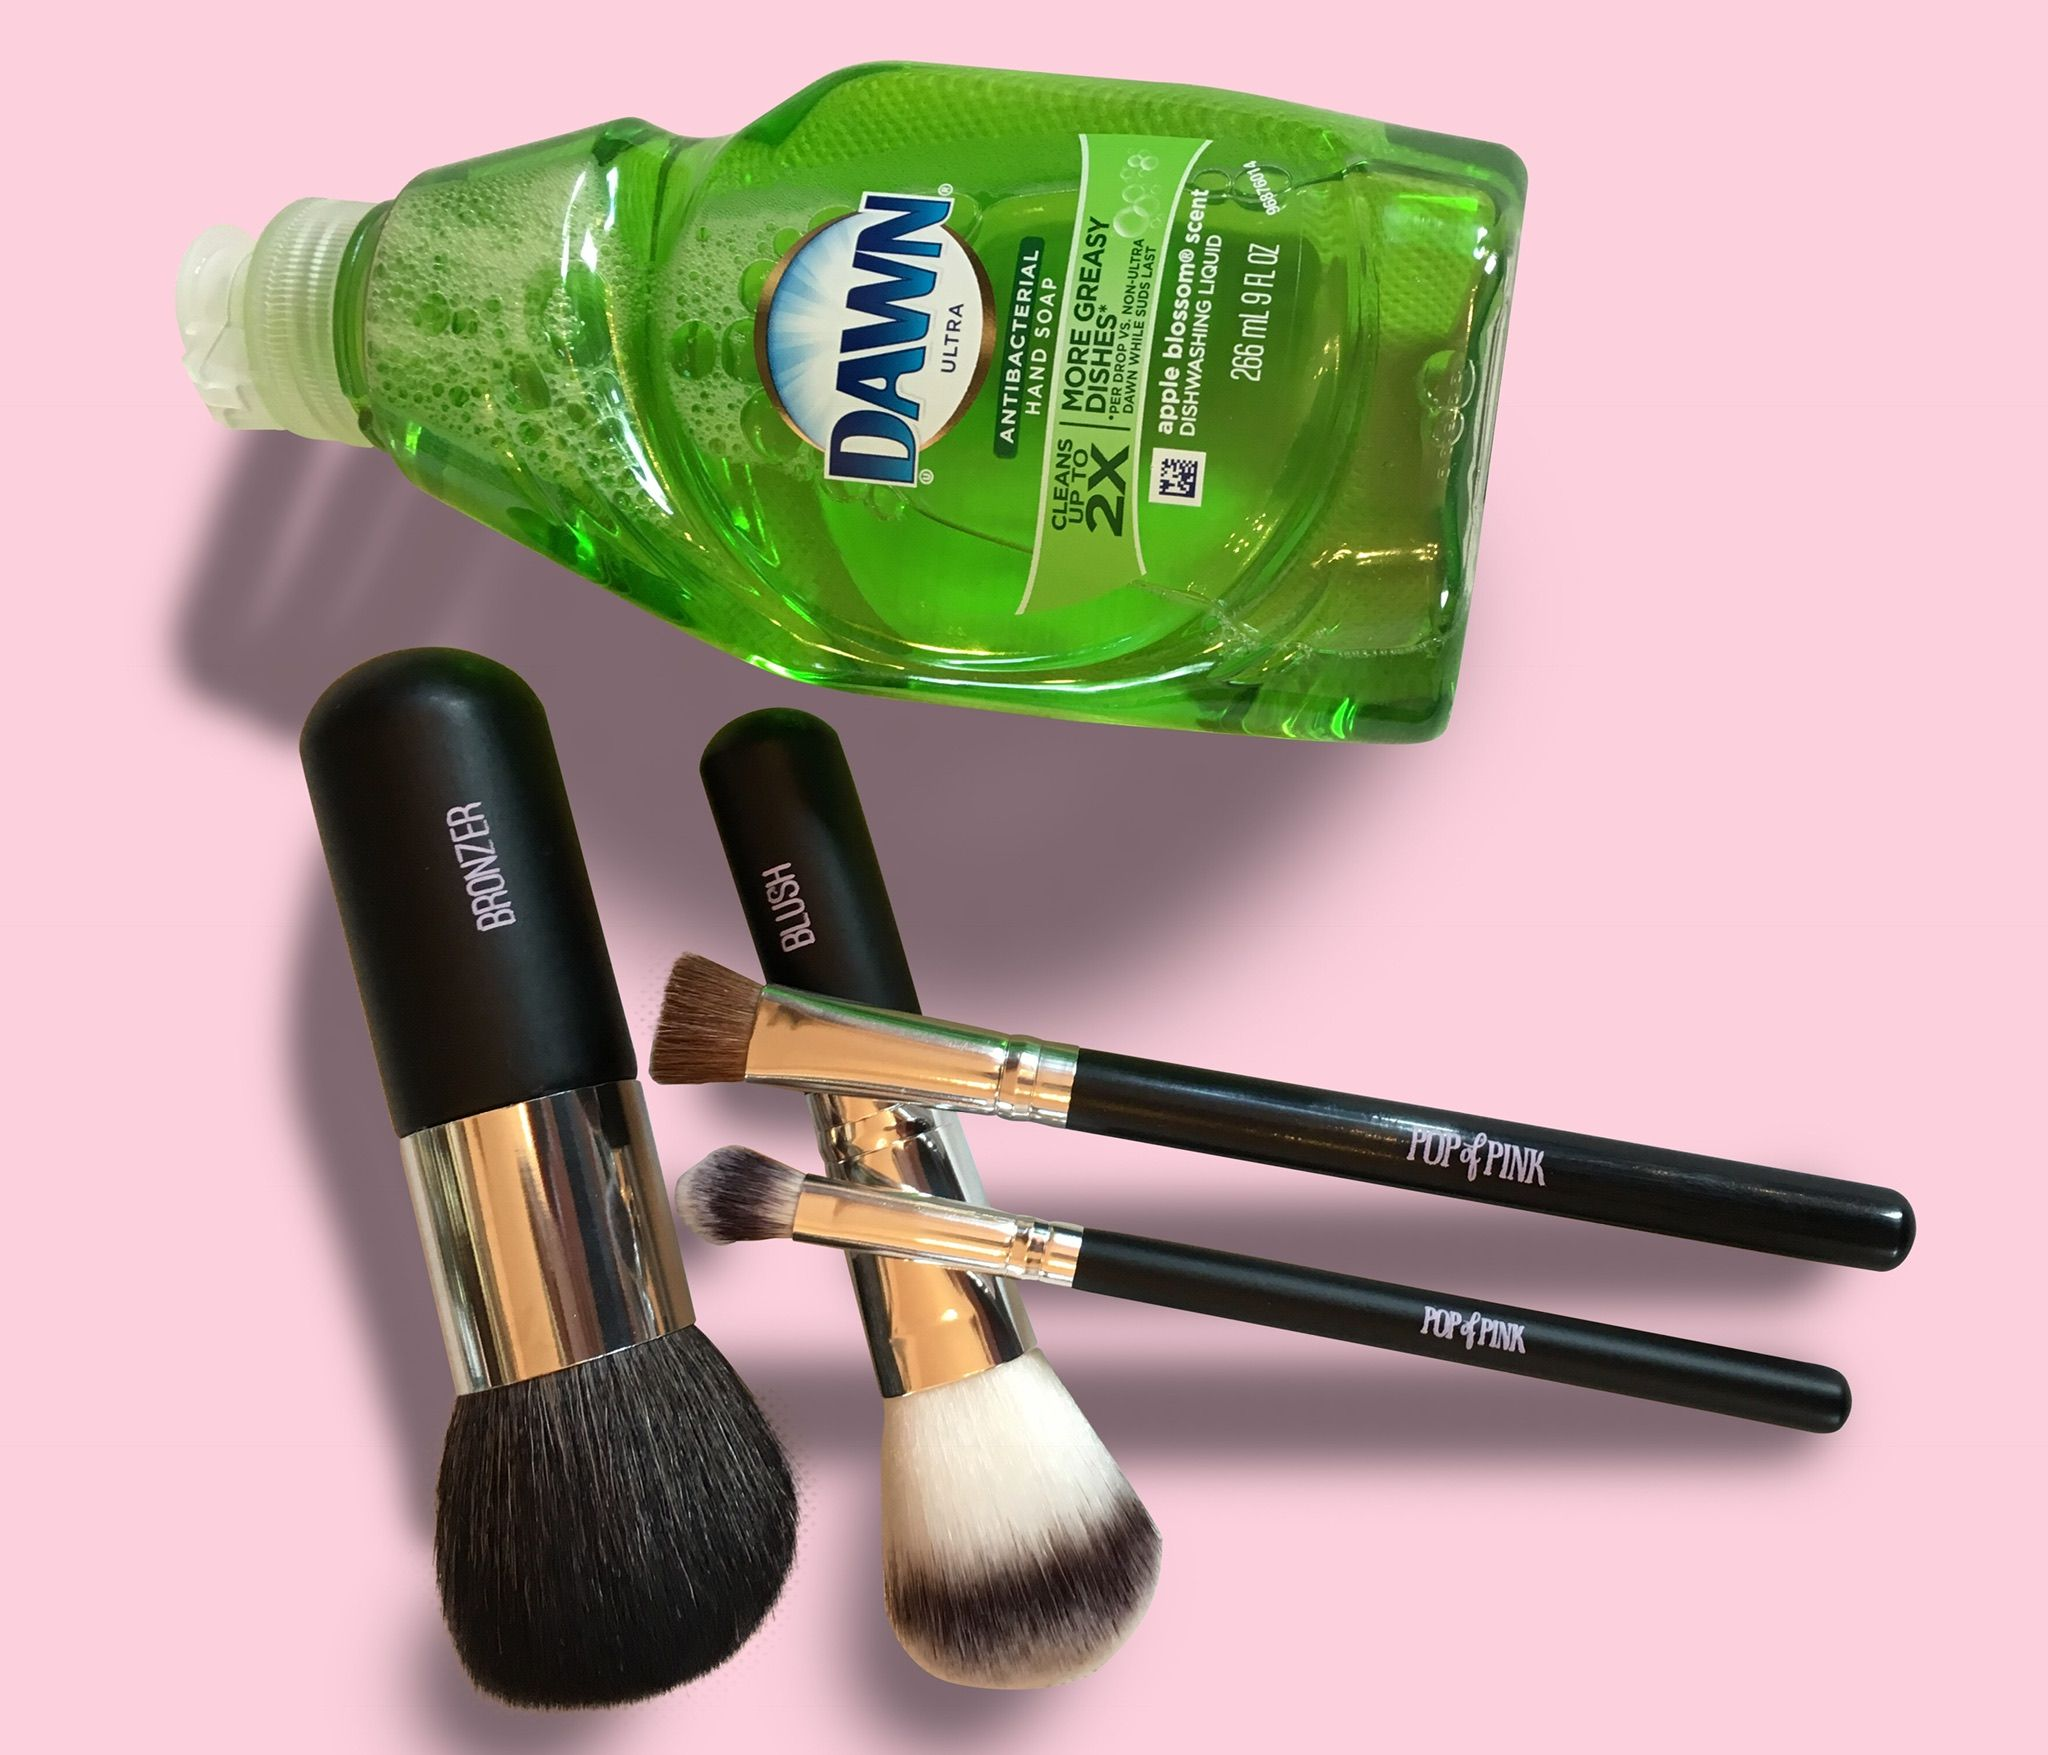 Tip Tuesday! OK gals, cleaning your makeup brushes not